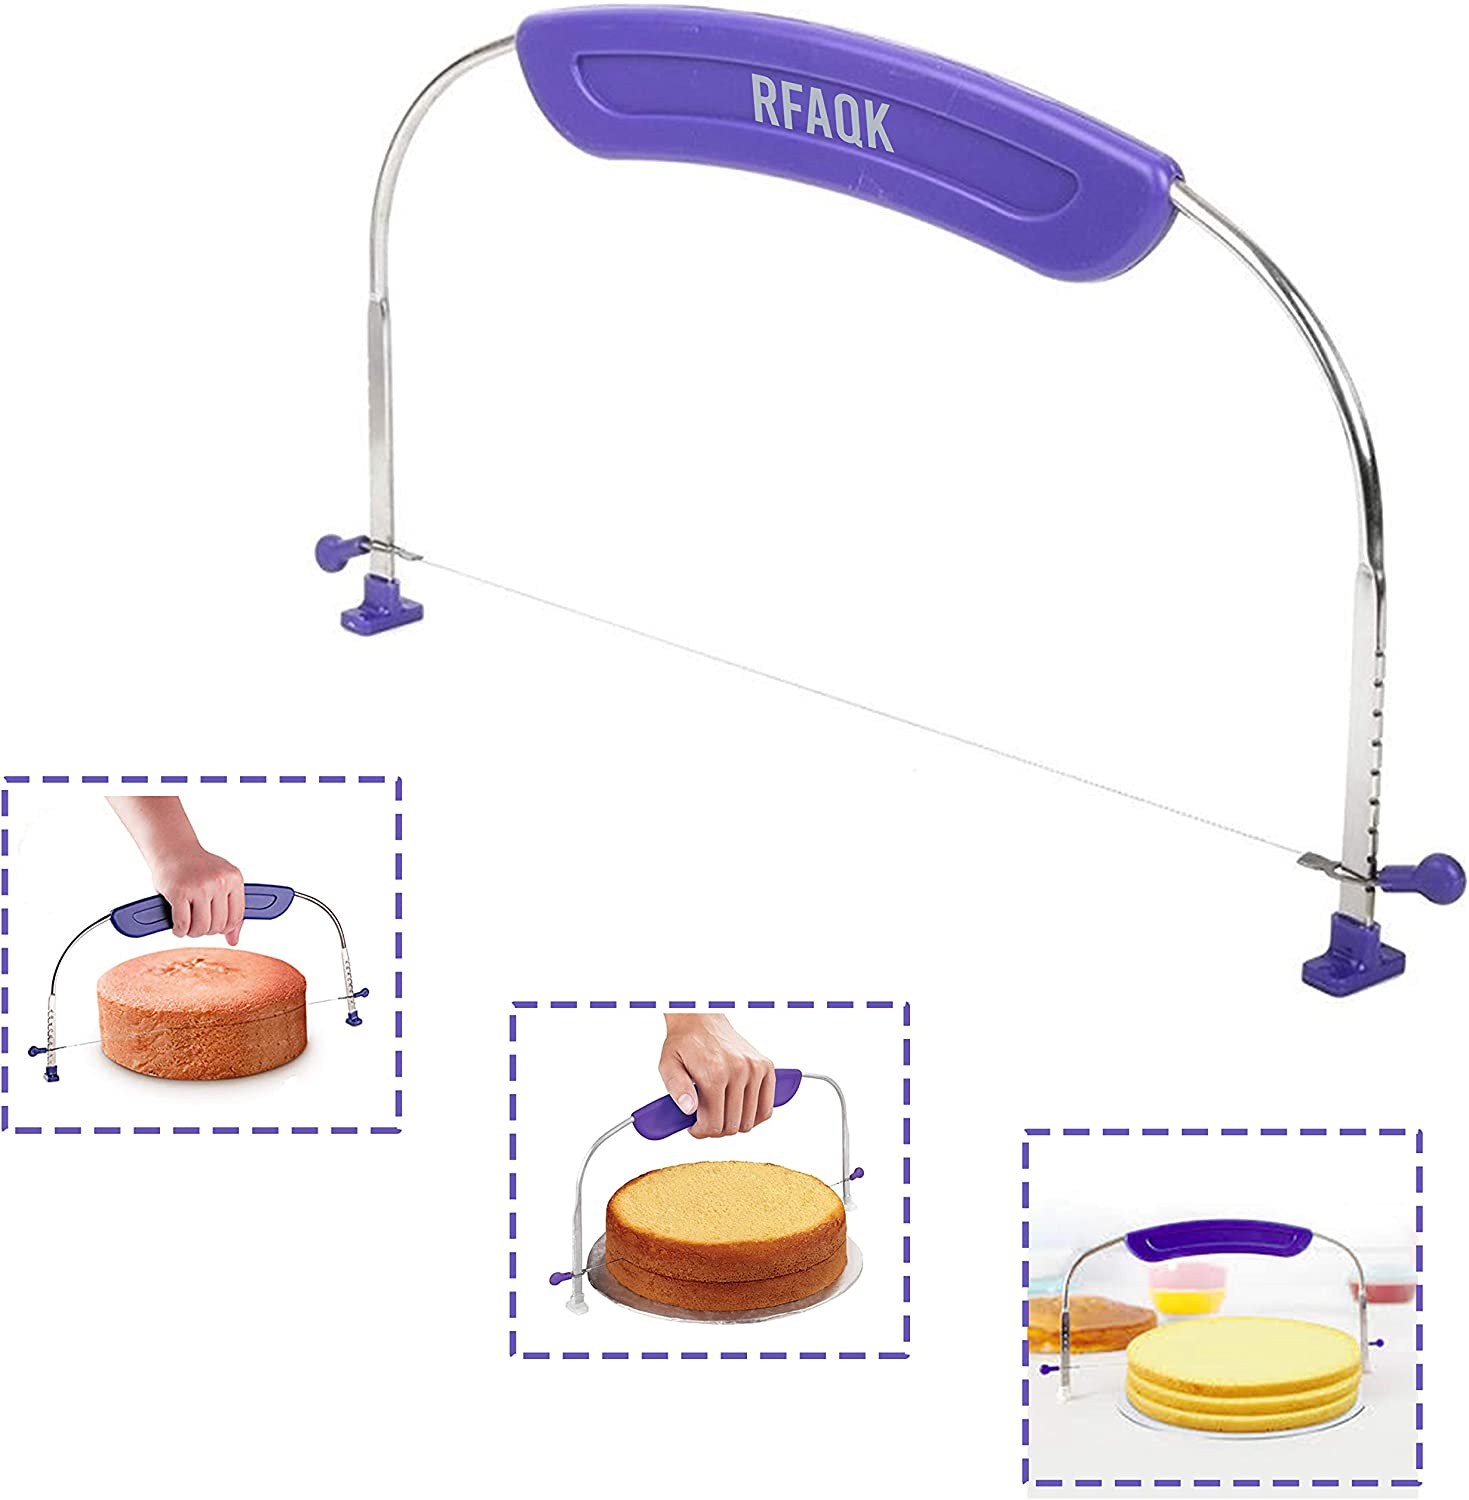 RFAQK Adjustable and Numbered Cake leveler for levelling Layers. Cake Decorating Cutter and Accessory for Slicing. Make Slices of your cake like a pro. Baking supplies and Tool.